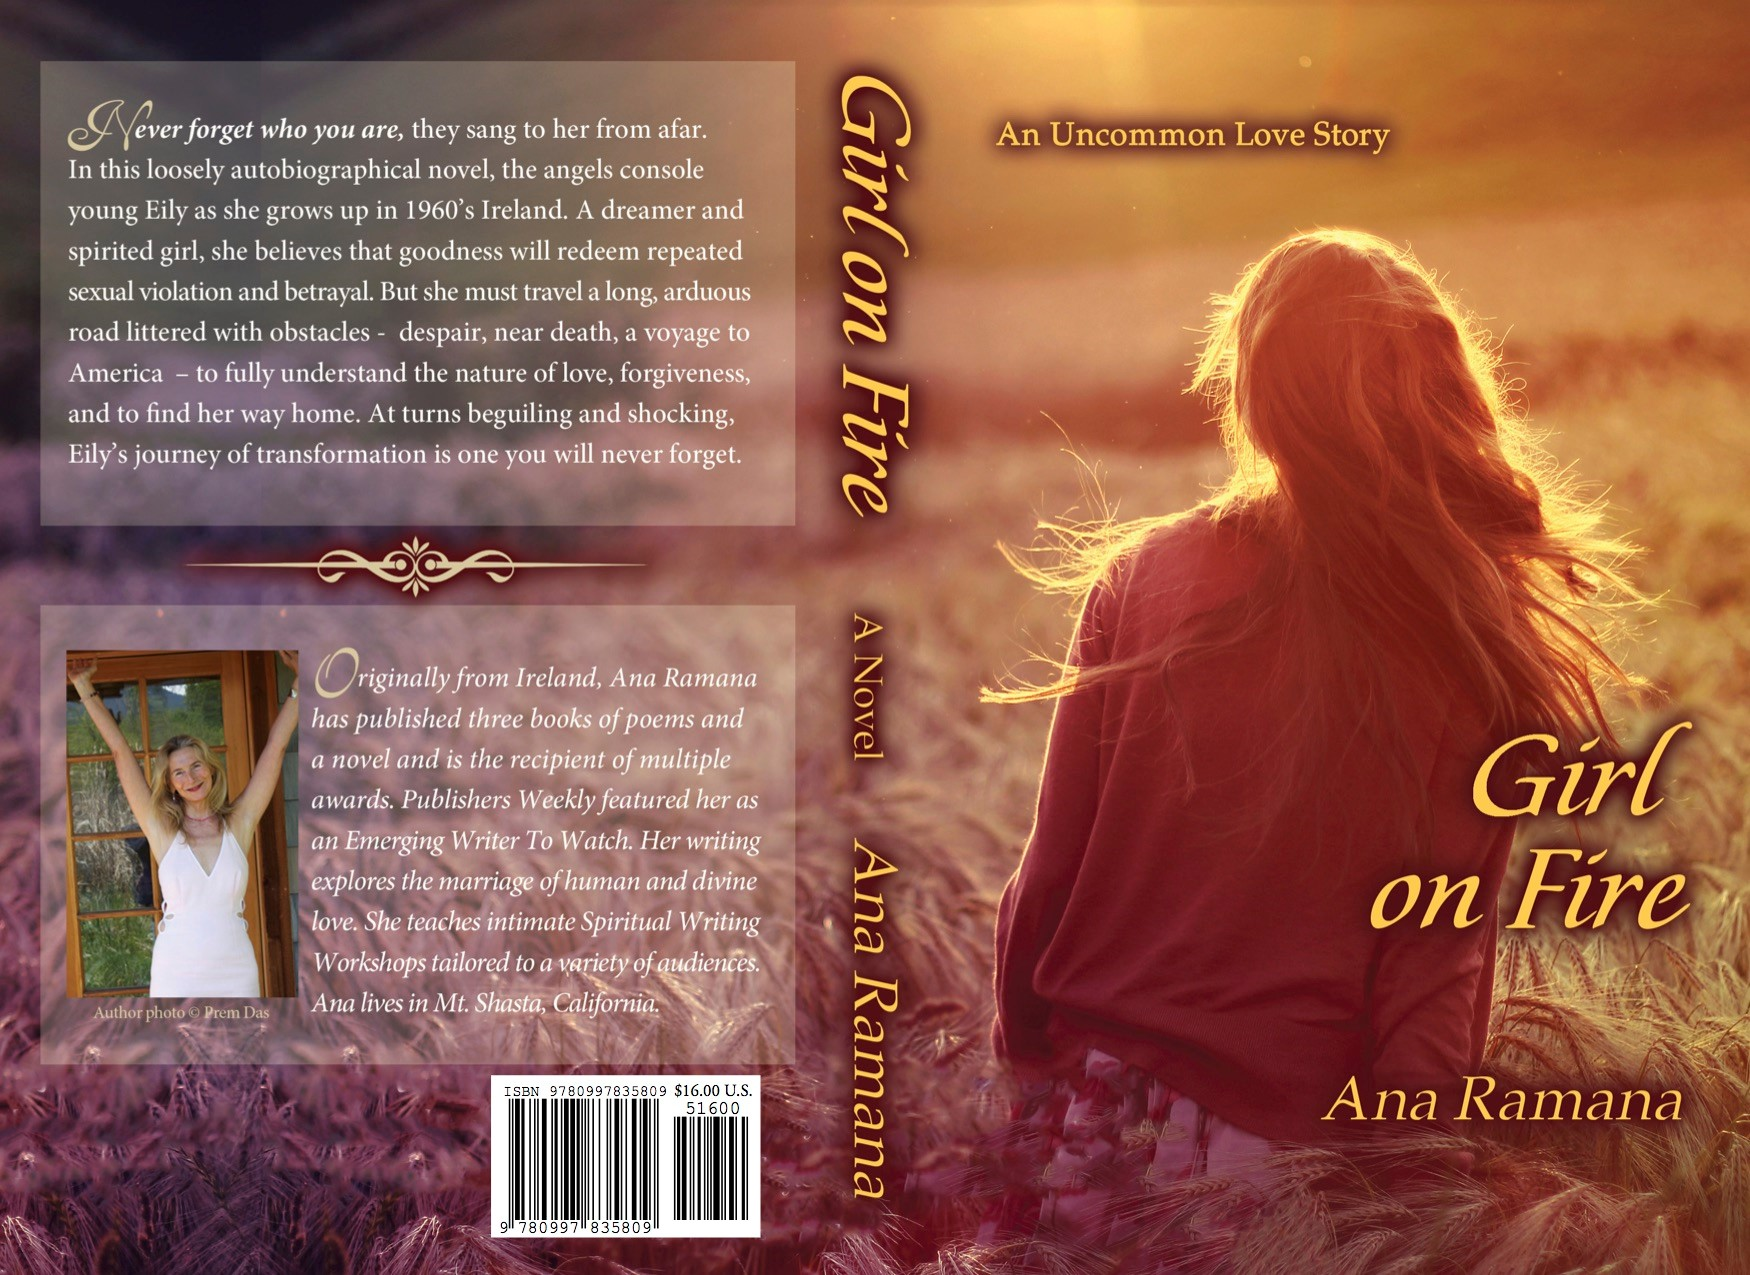 Girl on Fire Book Cover